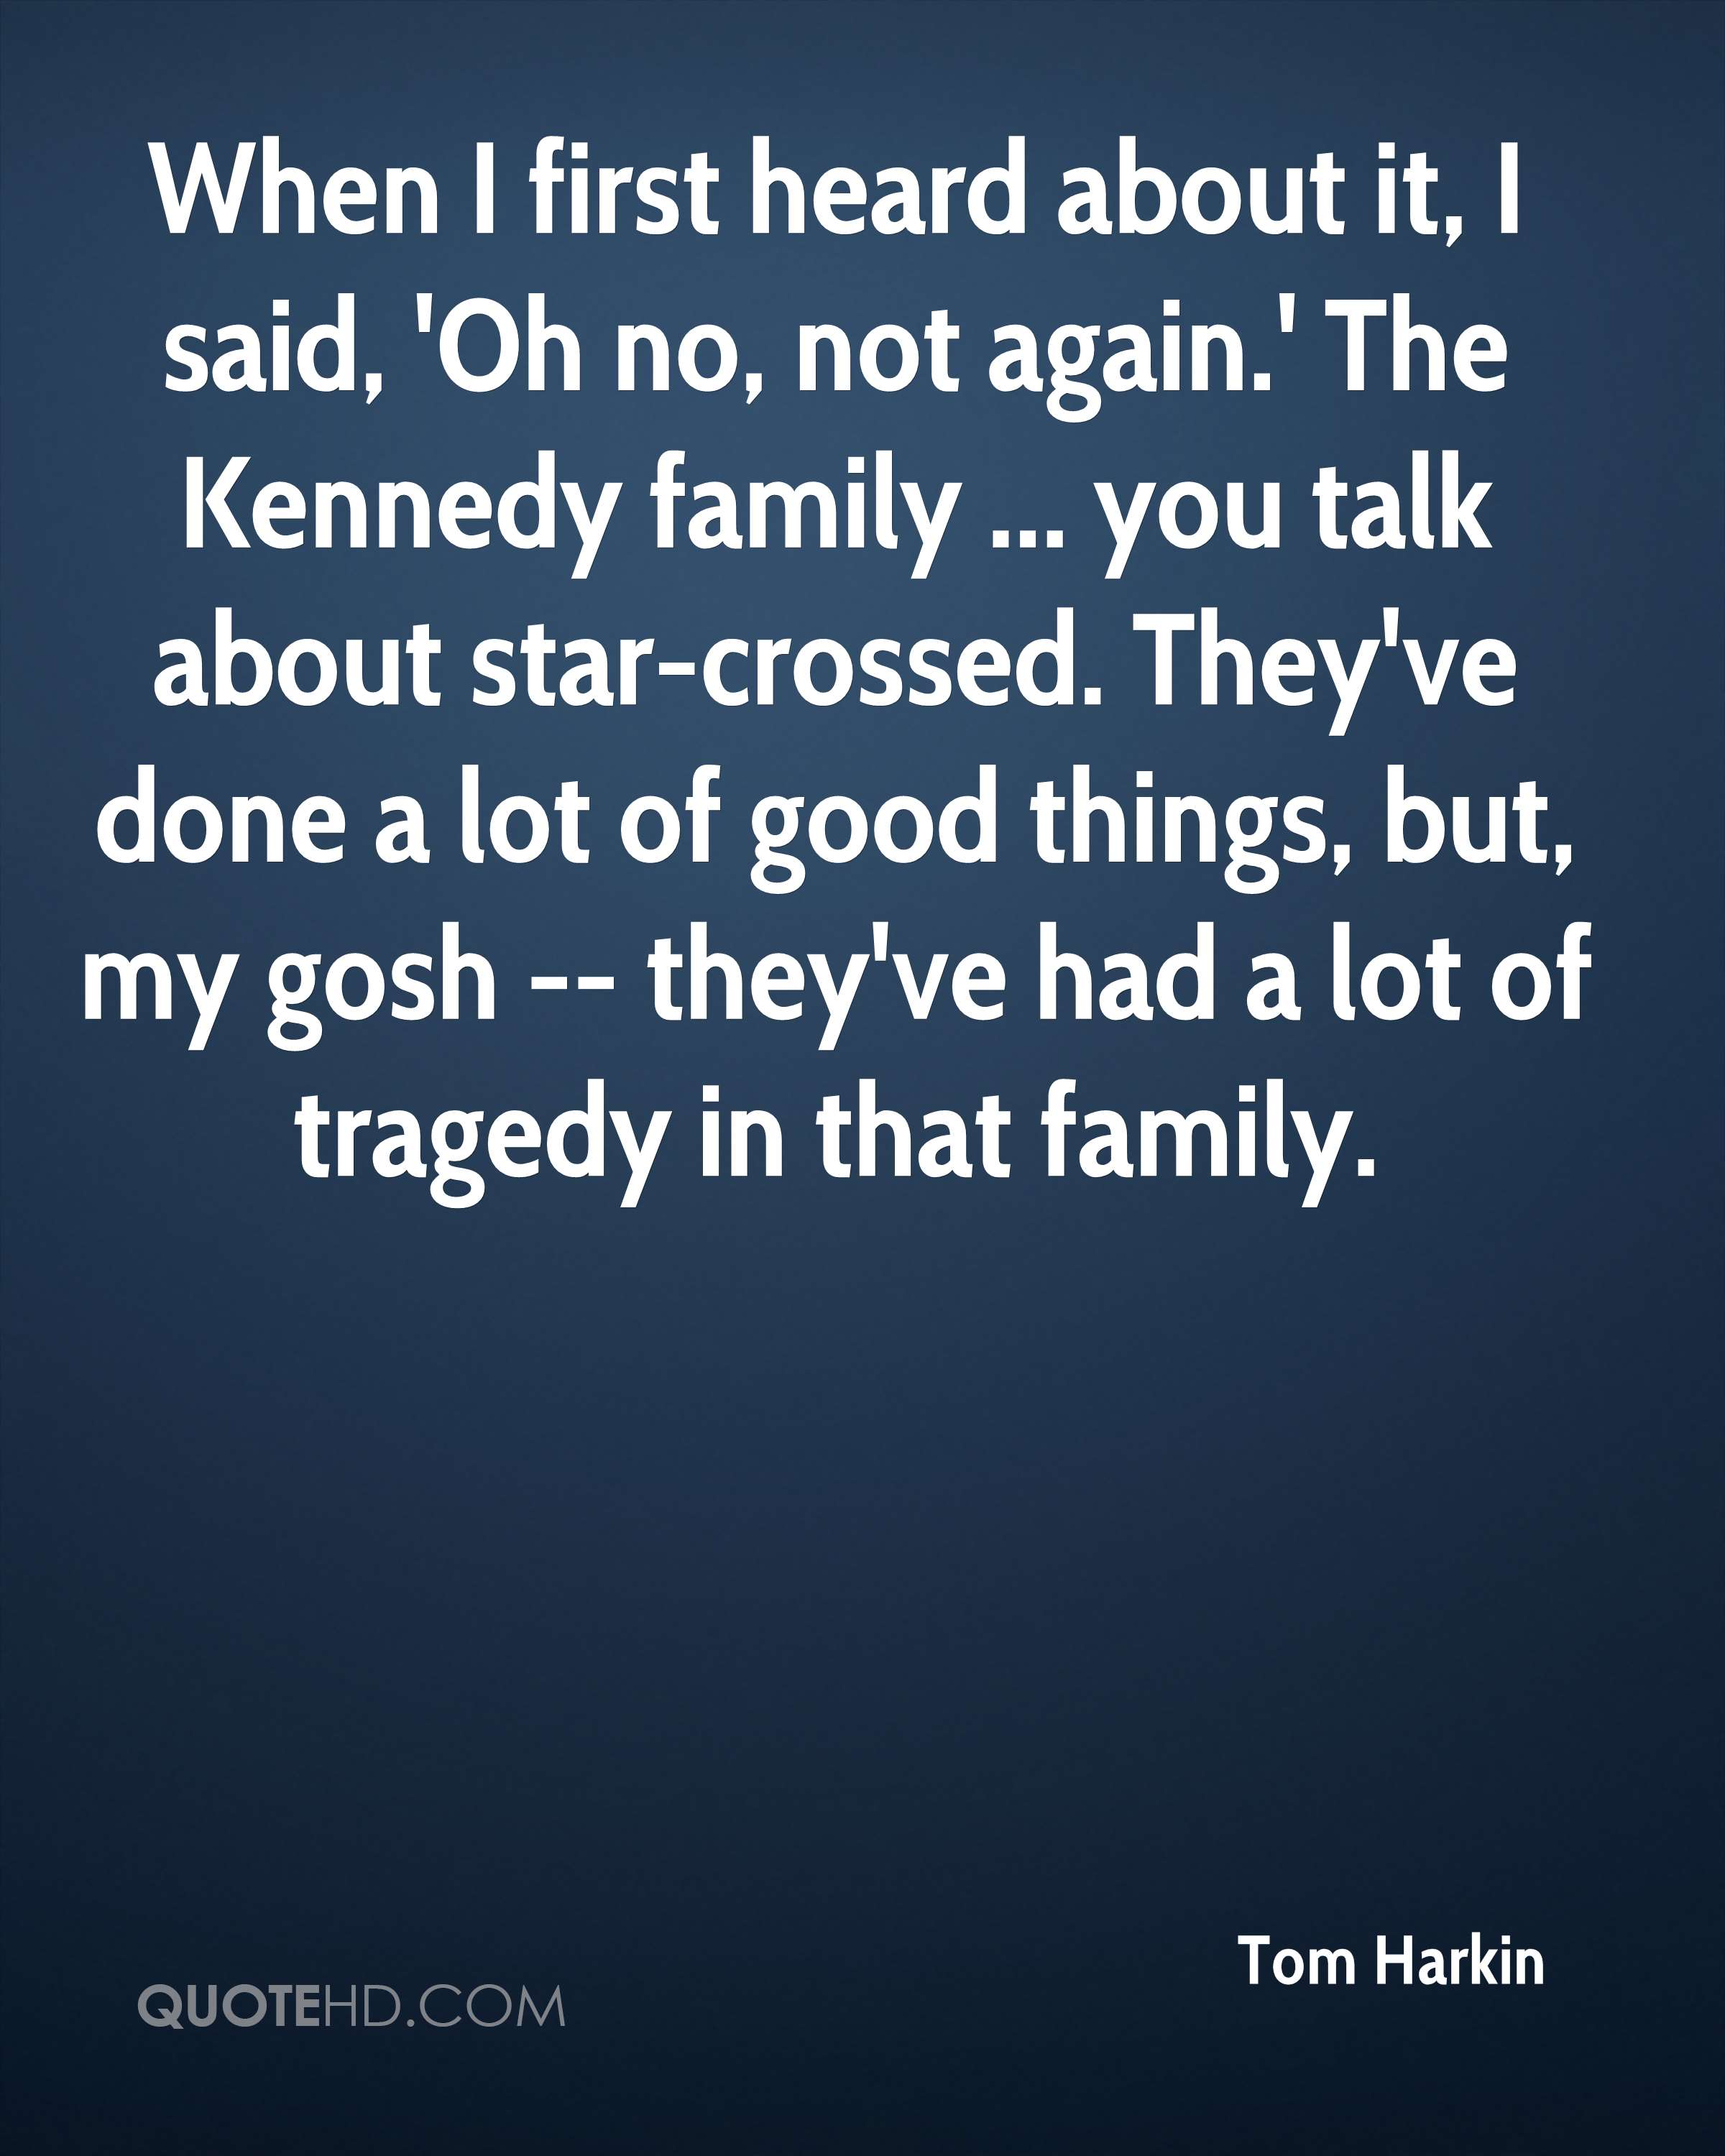 When I first heard about it, I said, 'Oh no, not again.' The Kennedy family ... you talk about star-crossed. They've done a lot of good things, but, my gosh -- they've had a lot of tragedy in that family.